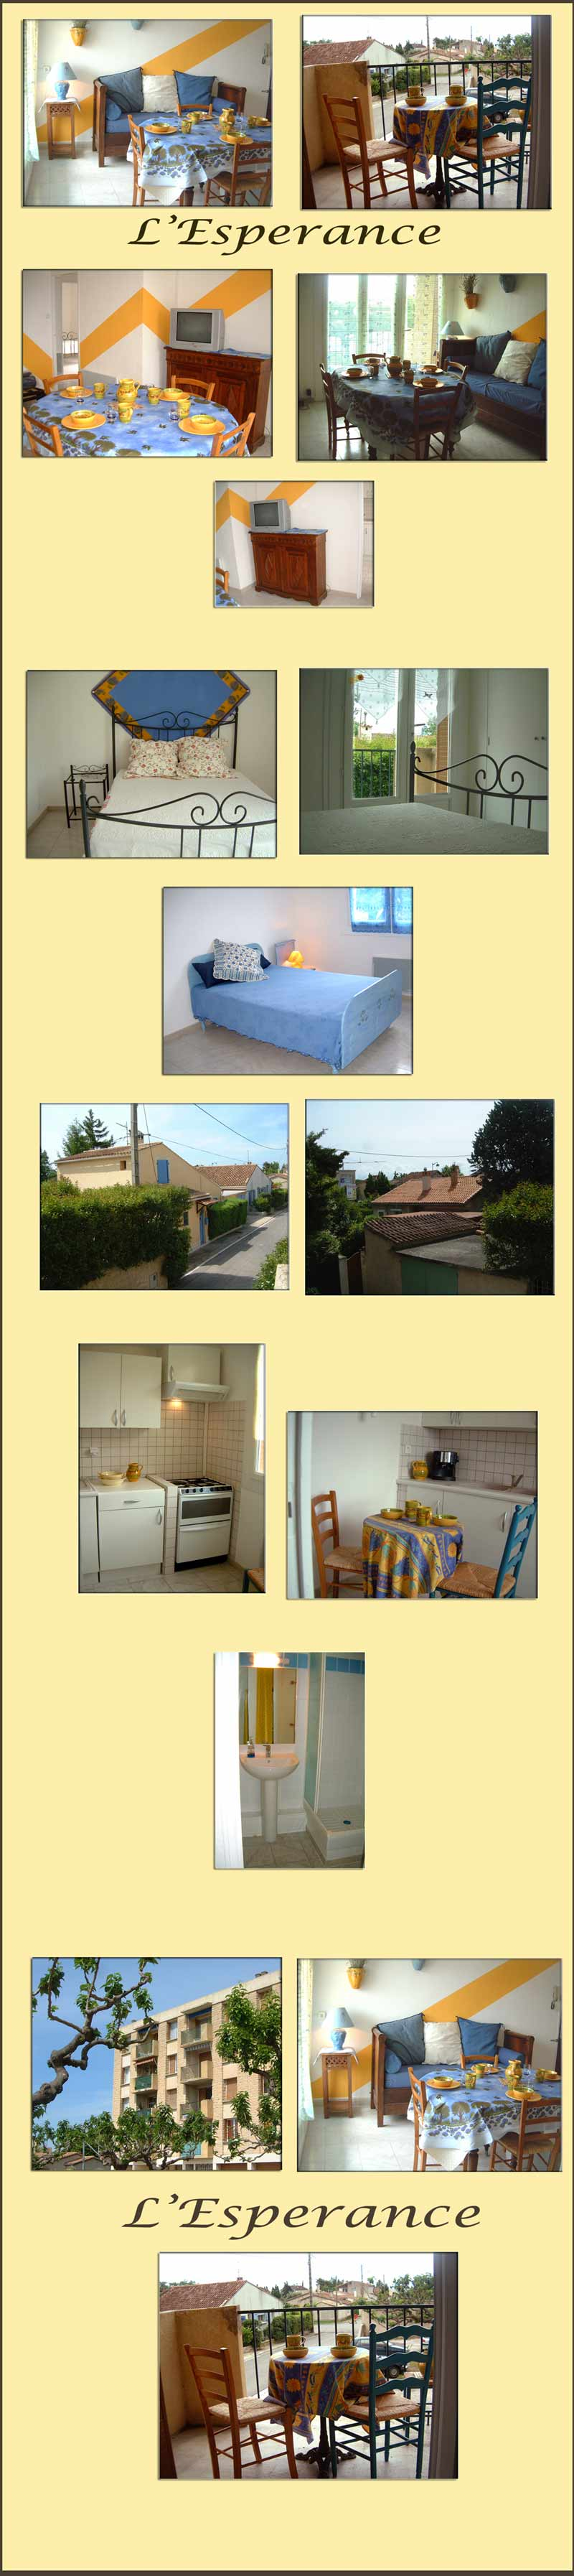 apartment rental Provence - Provence apartment with 2 bedrooms 2 balconies - great